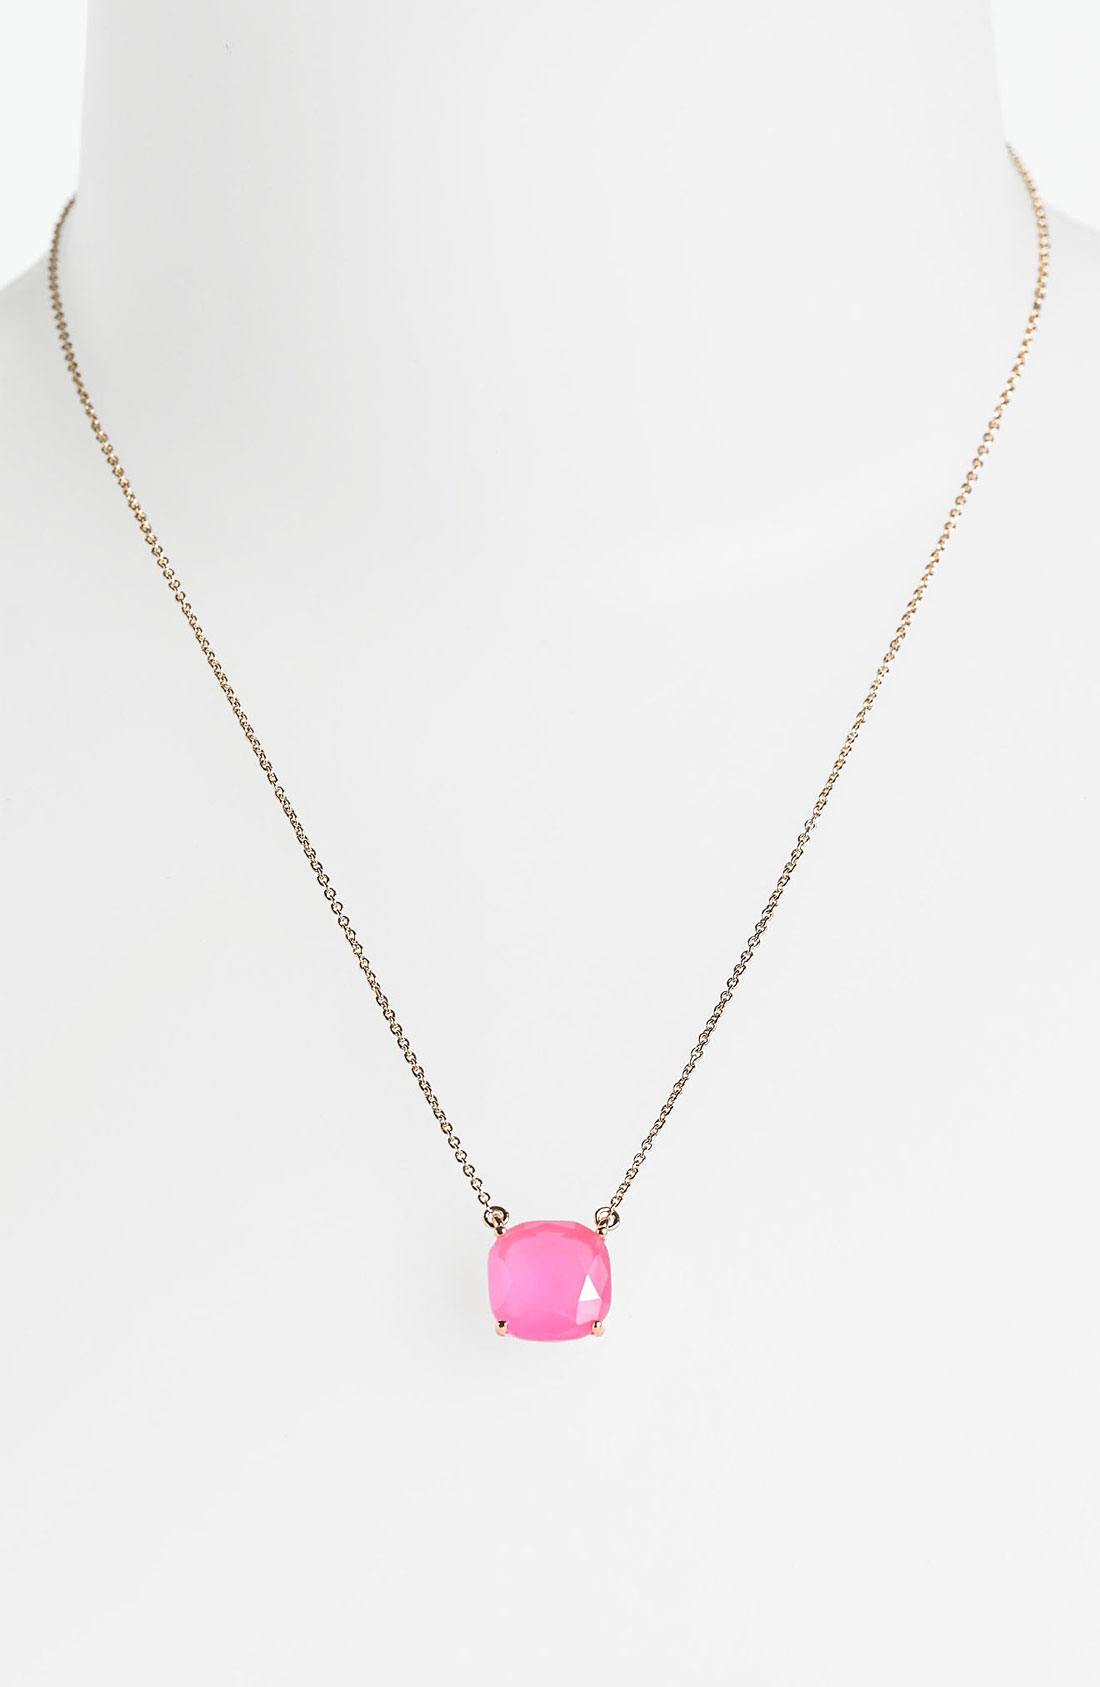 kate spade boxed pendant necklace in pink fluorescent